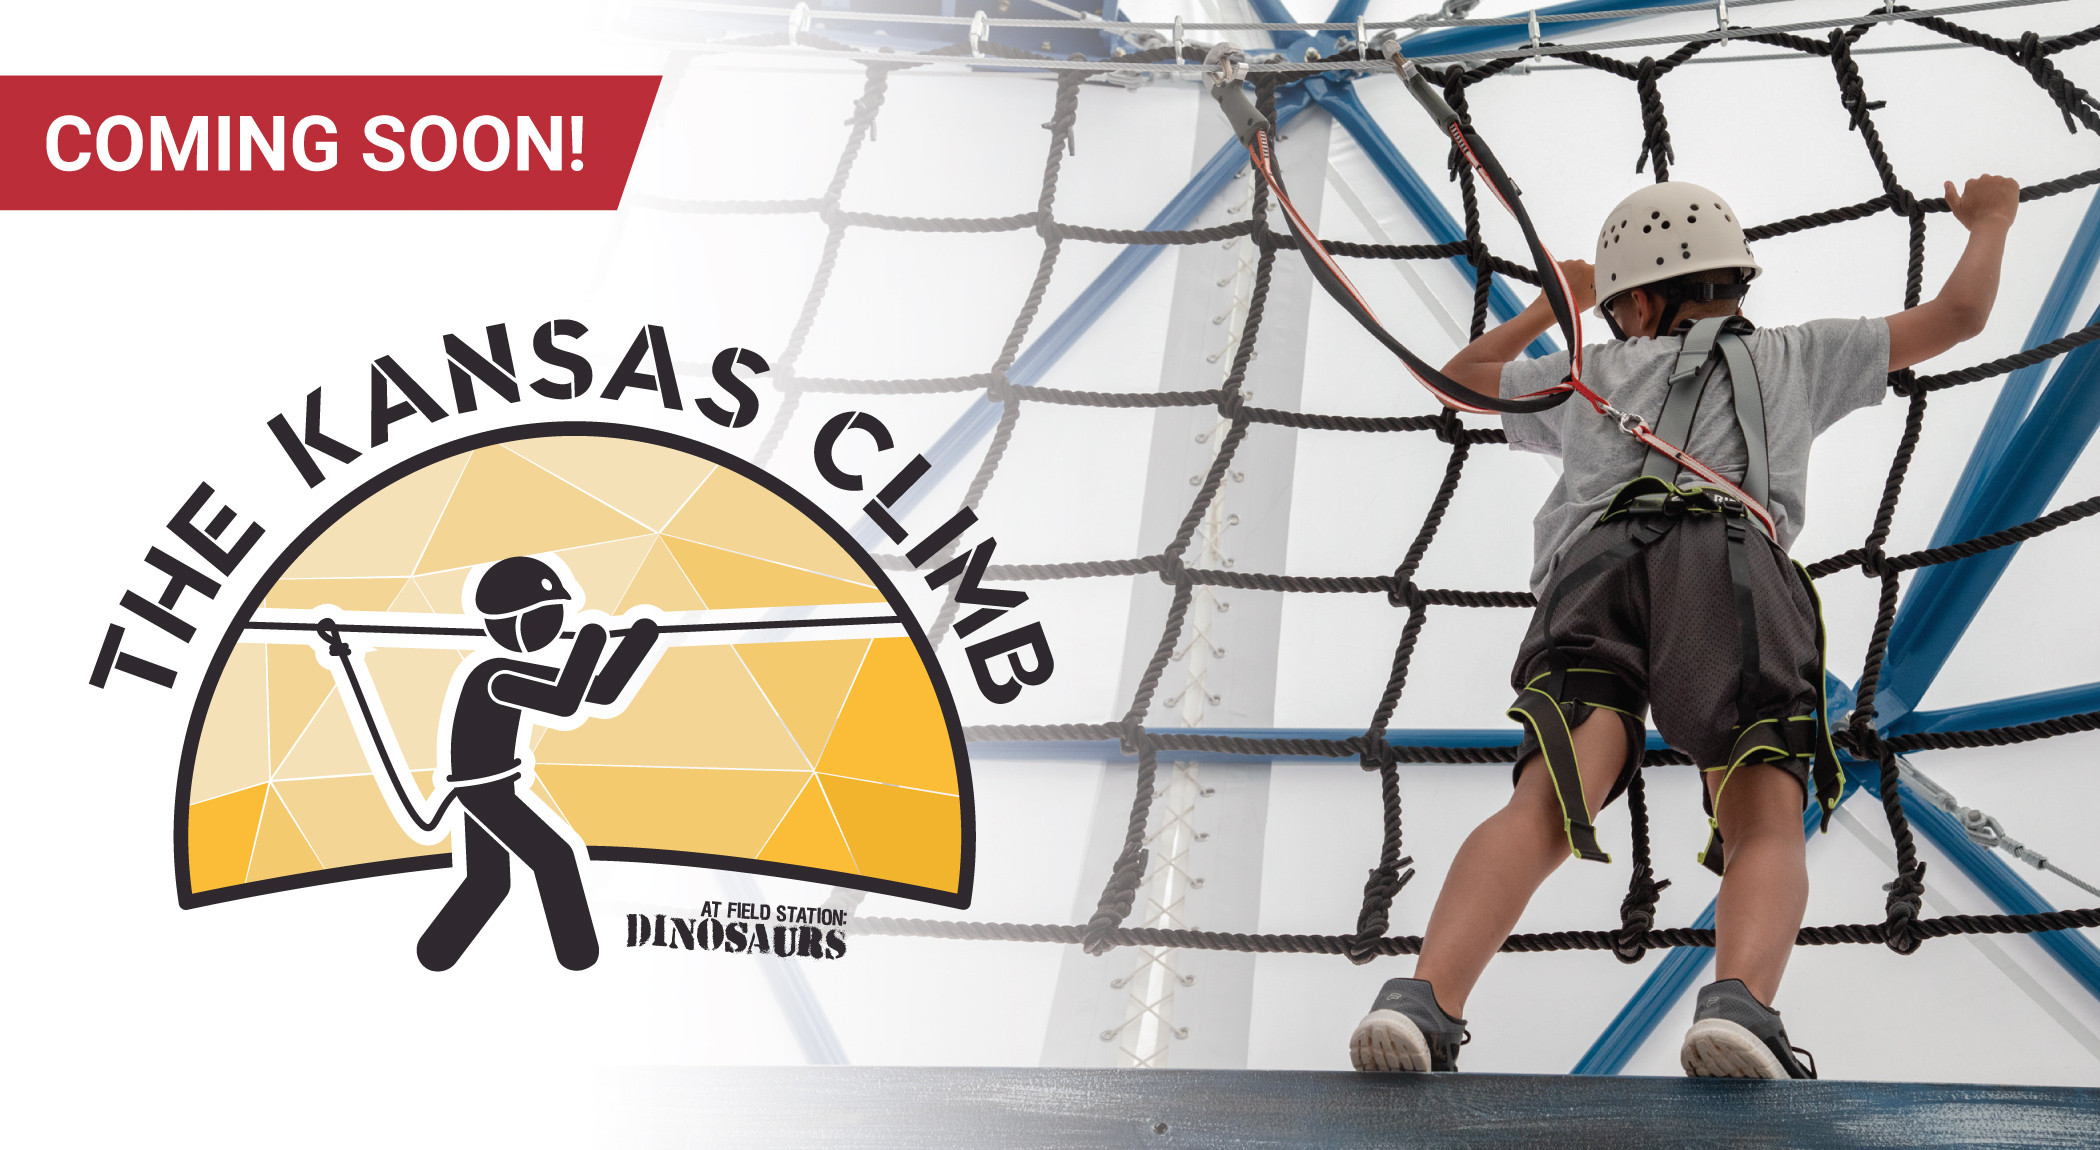 Coming Soon: The Kansas Climb